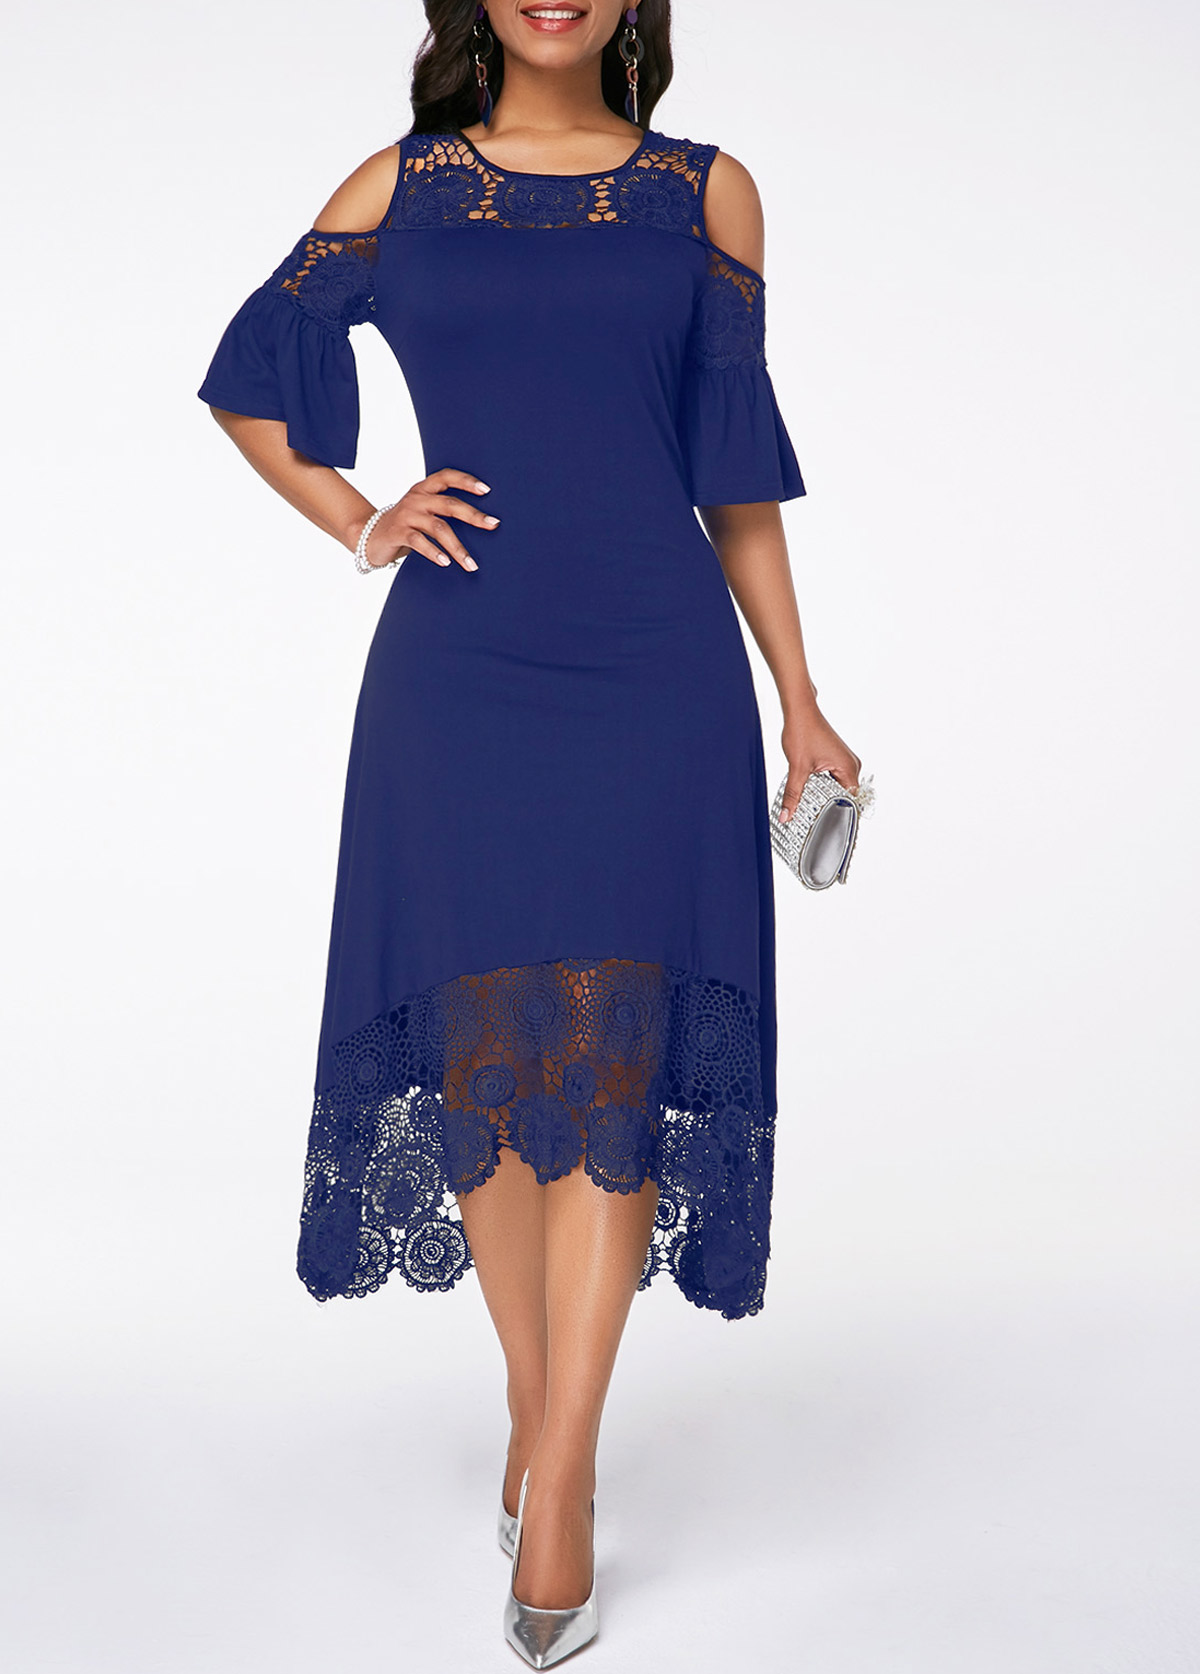 Flare Cuff Lace Panel Navy Blue Cold Shoulder Dress